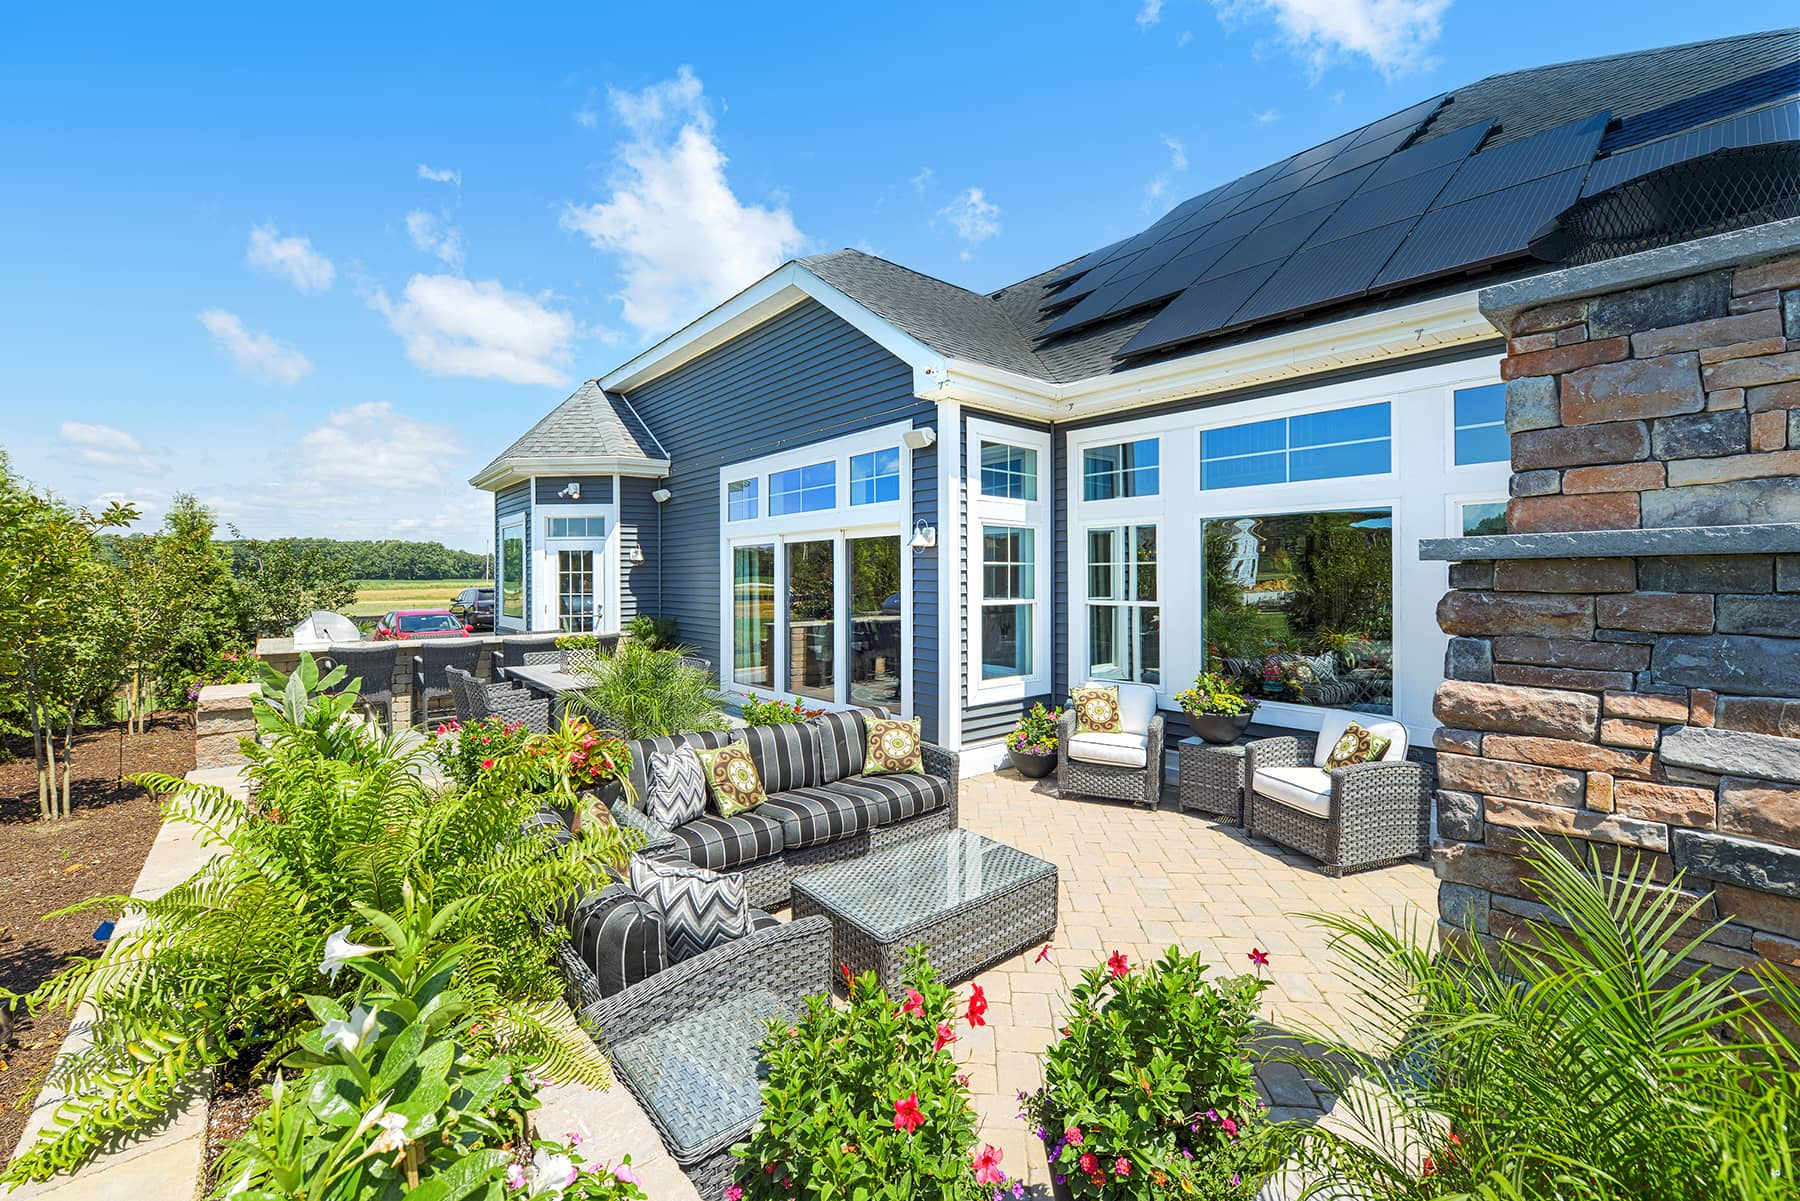 Beautiful shot of backyard with solar panels on roof of house